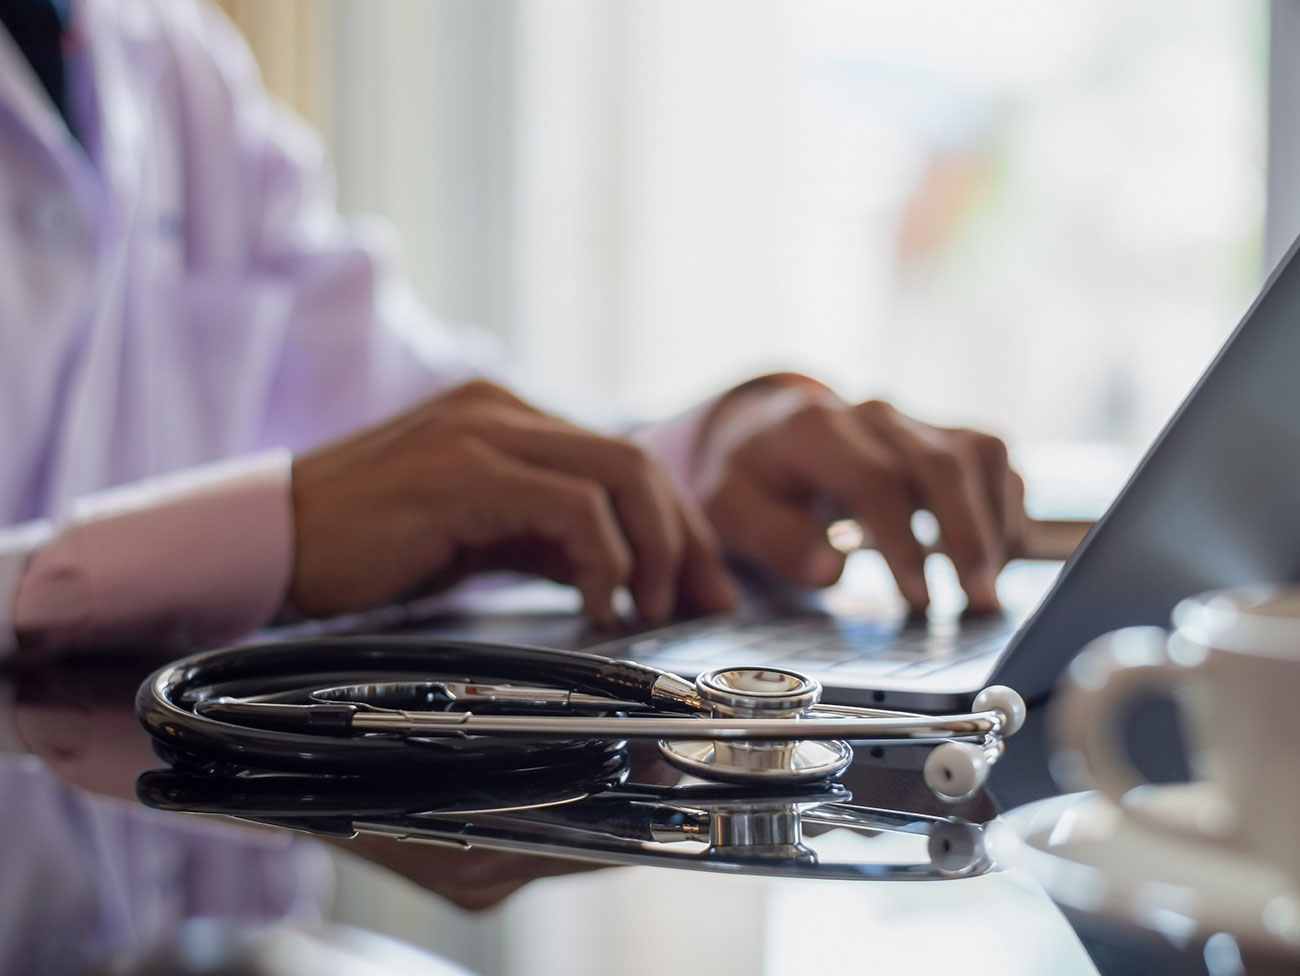 hands of a medical professional on the keyboard of a laptop